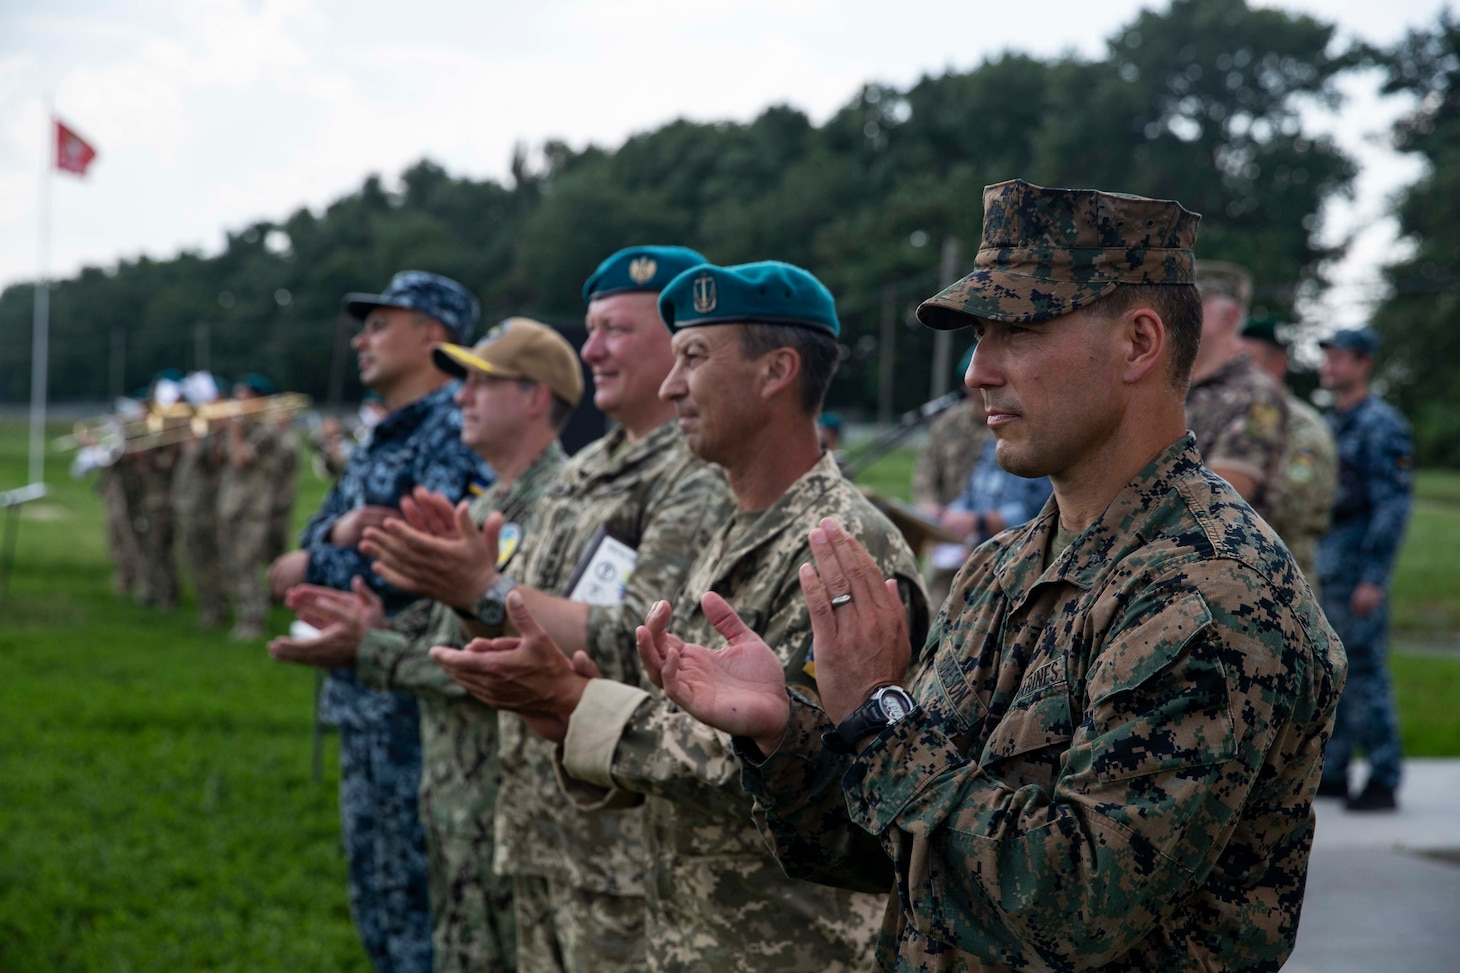 Senior leaders of the forces of the land component of Exercise Sea Breeze participate in the closing ceremony in Oleshky Sands, Ukraine, July 10, 2021.